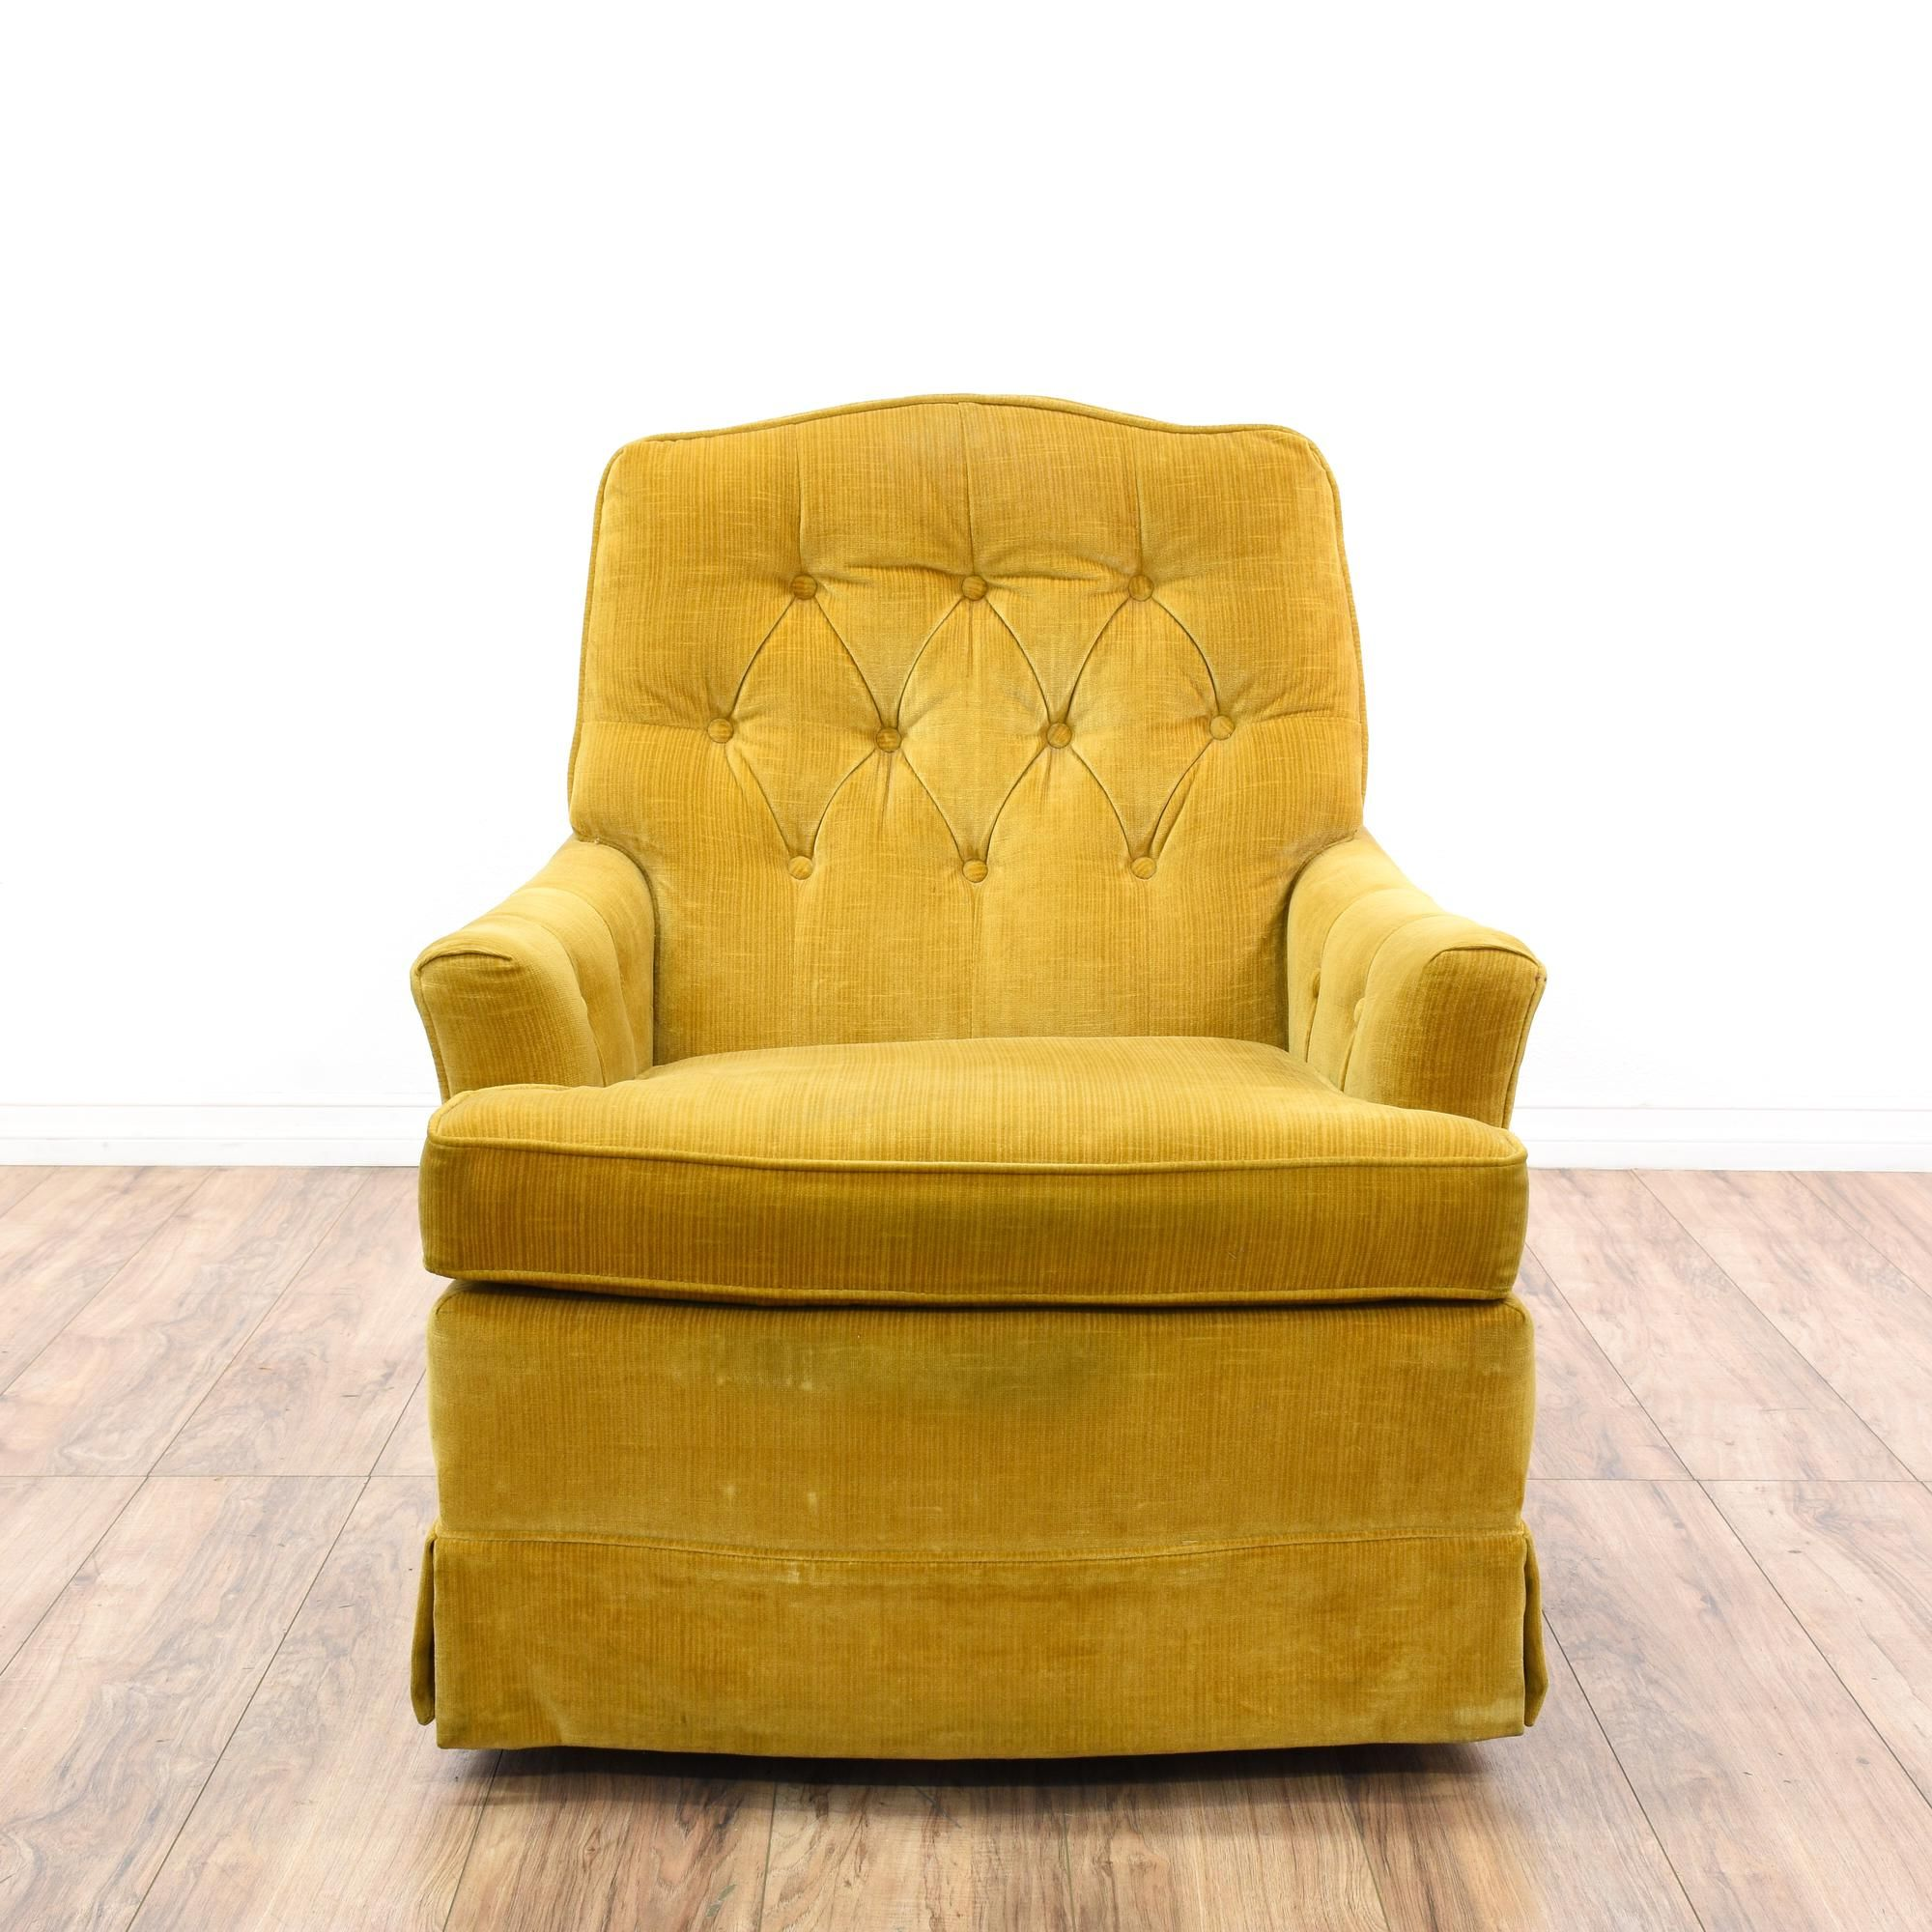 This accent chair is upholstered in a durable mustard yellow